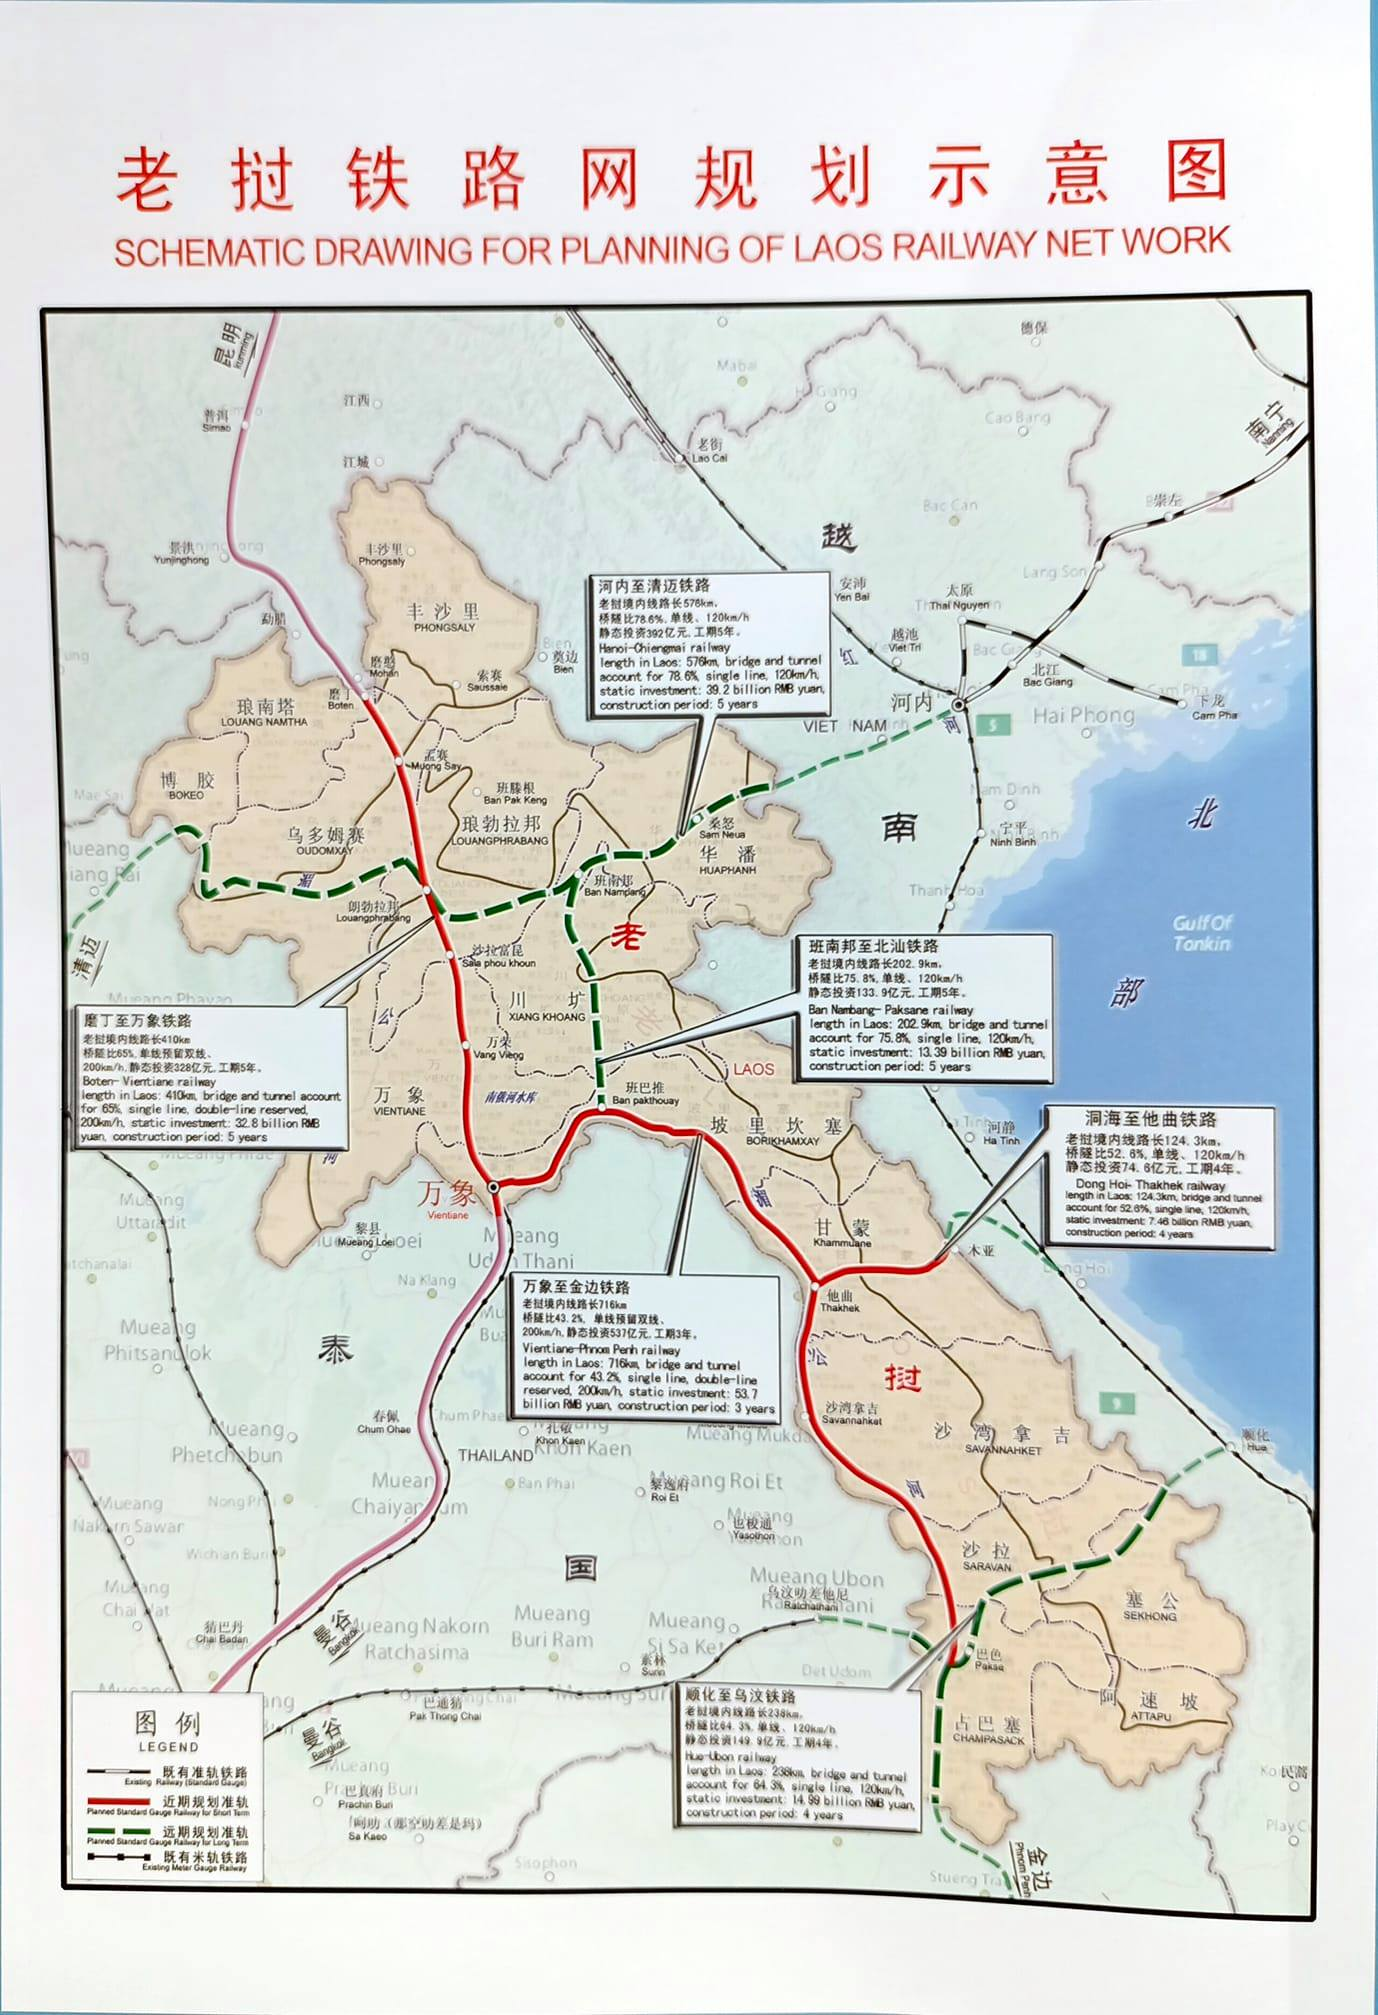 Schematic Drawing For Planning Of Laos Railway Network